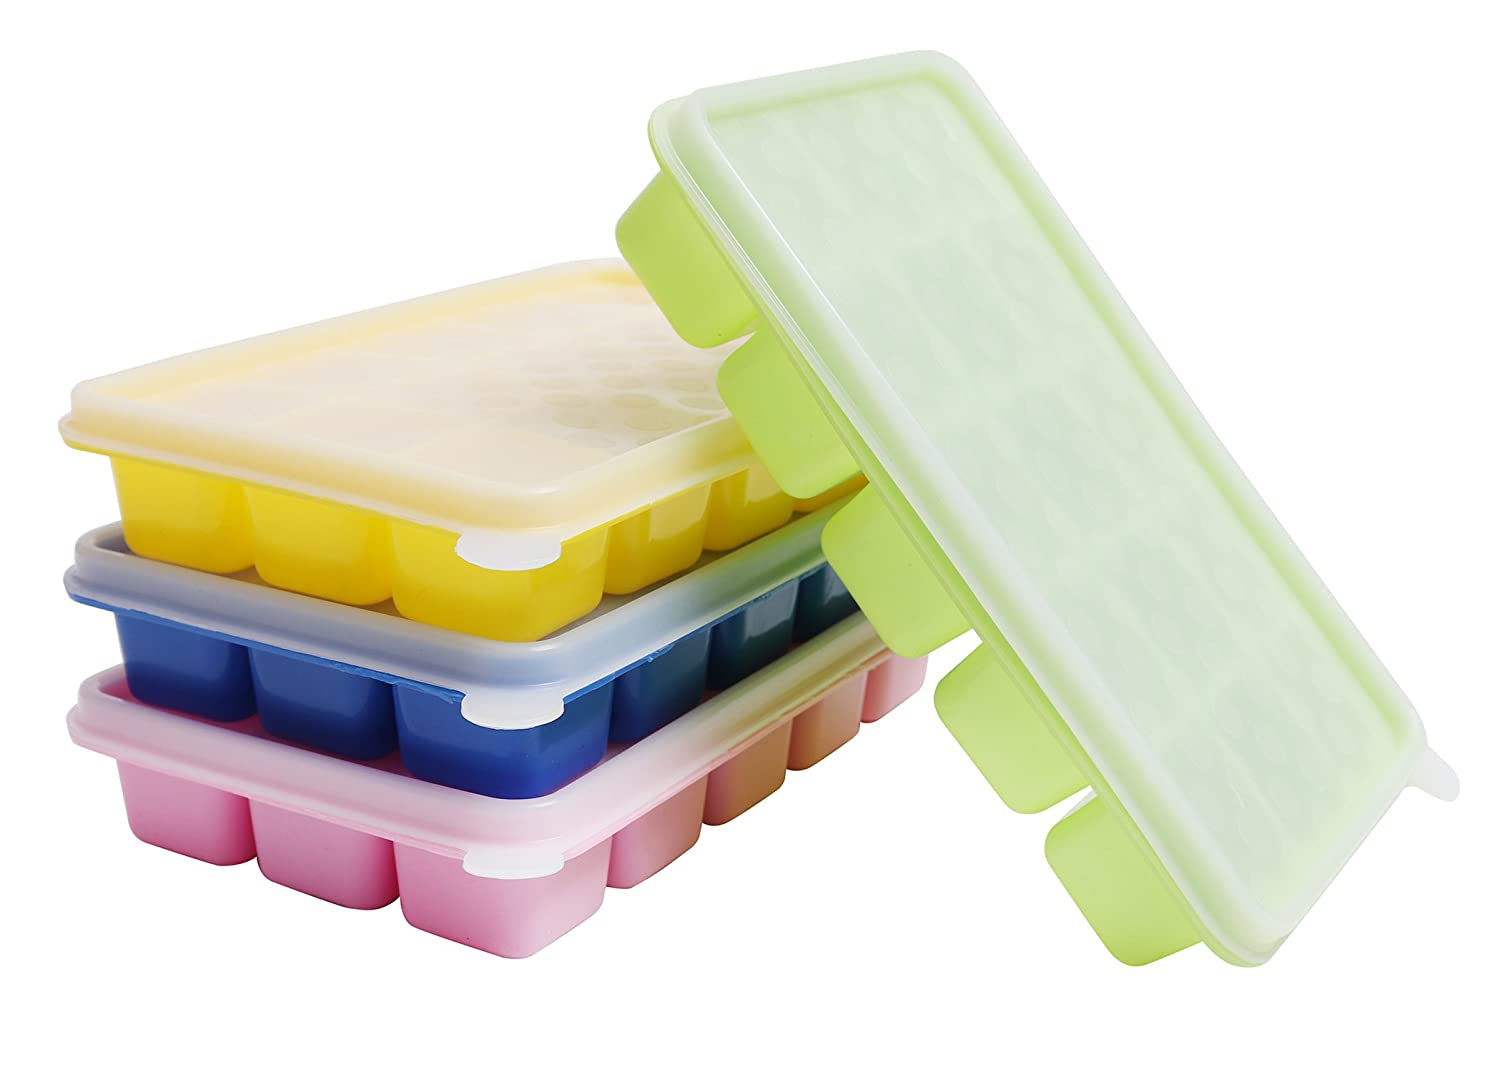 4 Pack Silicone Ice Cube Trays with Clear Lids by Kurtzy - Covered Ice Cube Tray Set with 60 Ice Cubes Molds - Flexible Silicone BPA Free Stackable No Spill Ice Cube Mold Storage Containers CT-3555